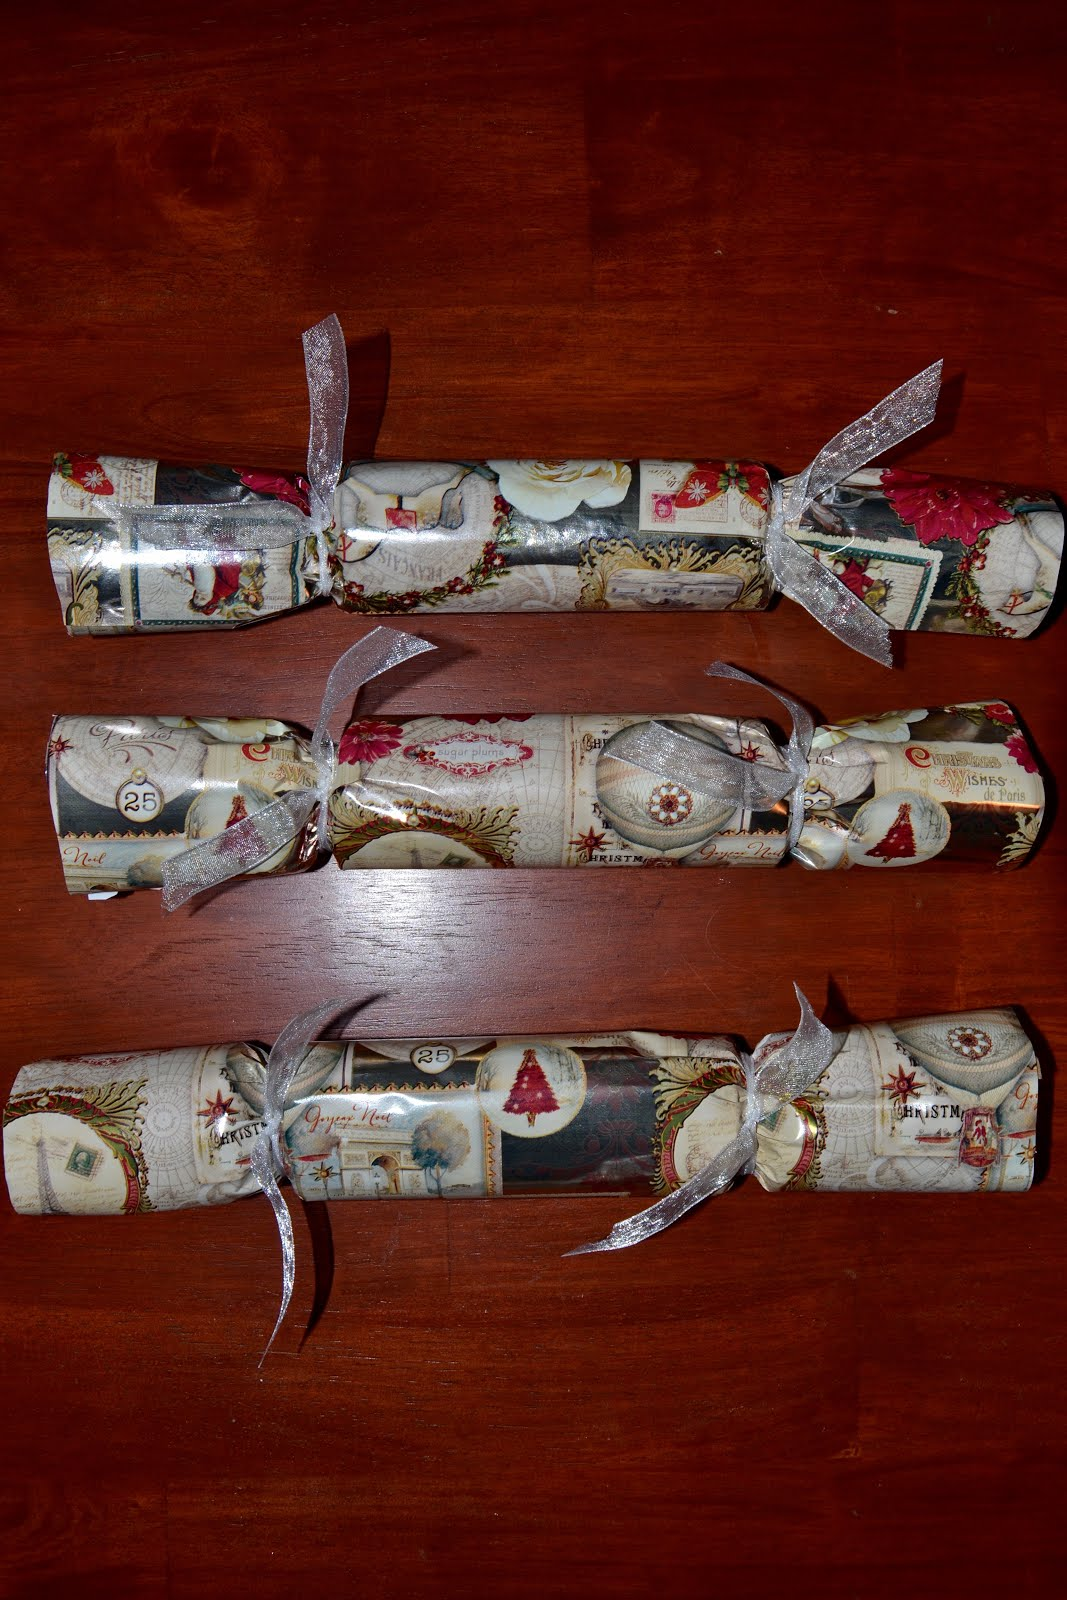 christmas crackers are an english christmas tradition that dates back to 1847 the cracker gets its name from the cracking noise it makes when pulled apart